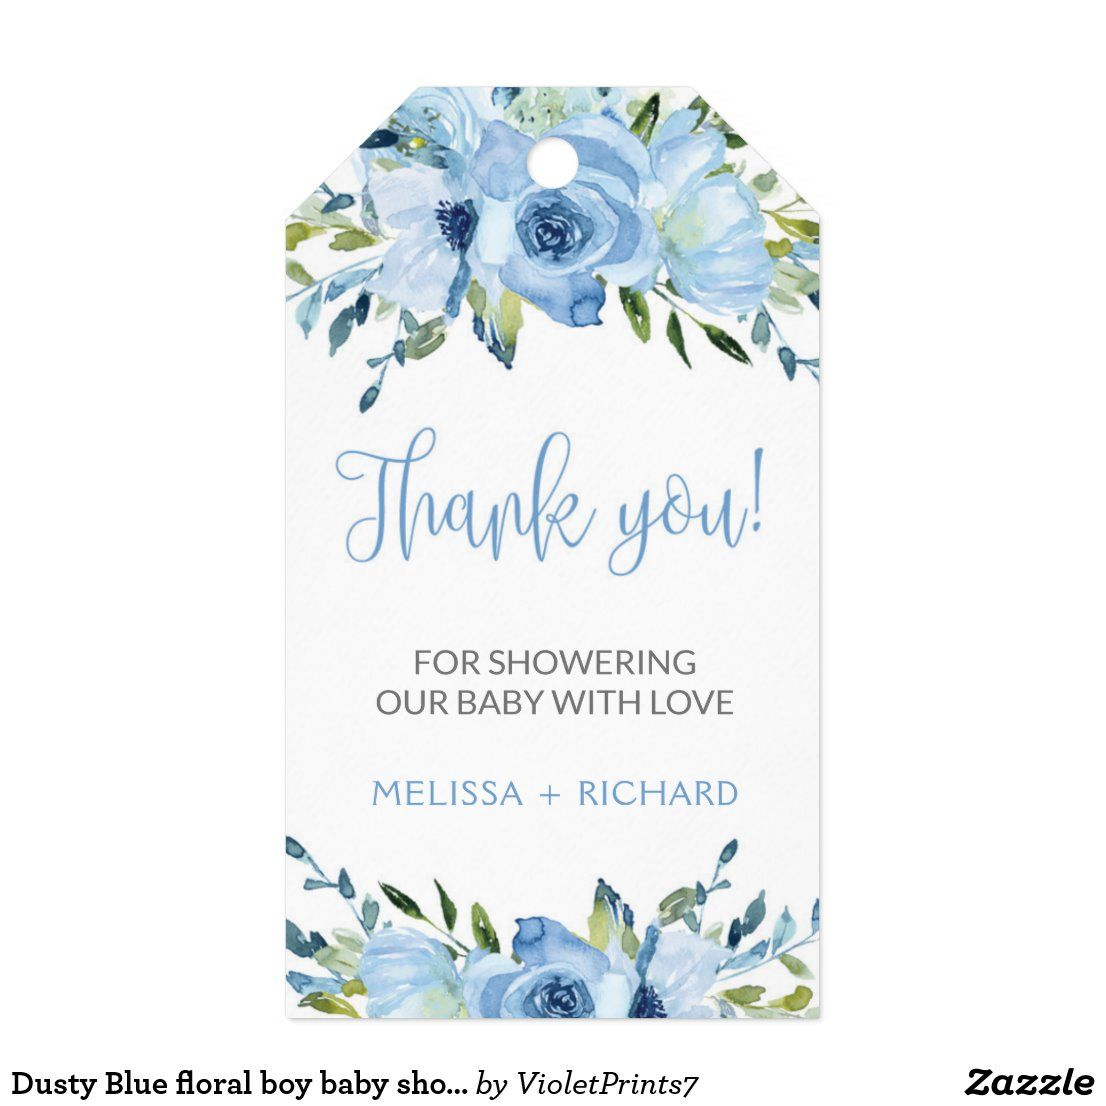 Dusty Blue floral boy baby shower gift tag favor Zazzle